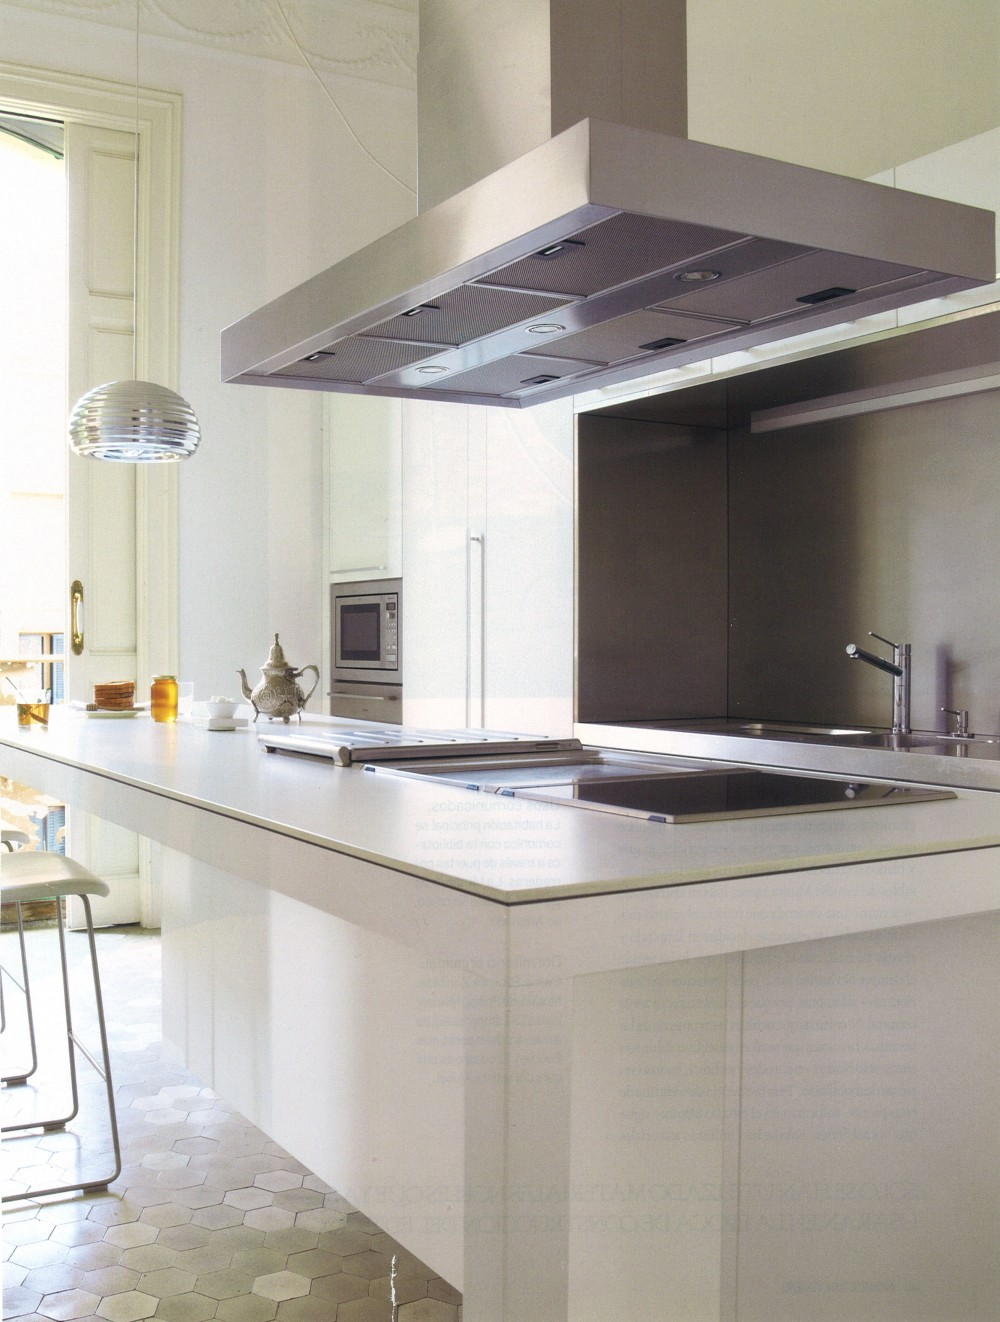 Arquitectura y Diseño 108.,Renovation project of housing in the Eixample of Barcelona